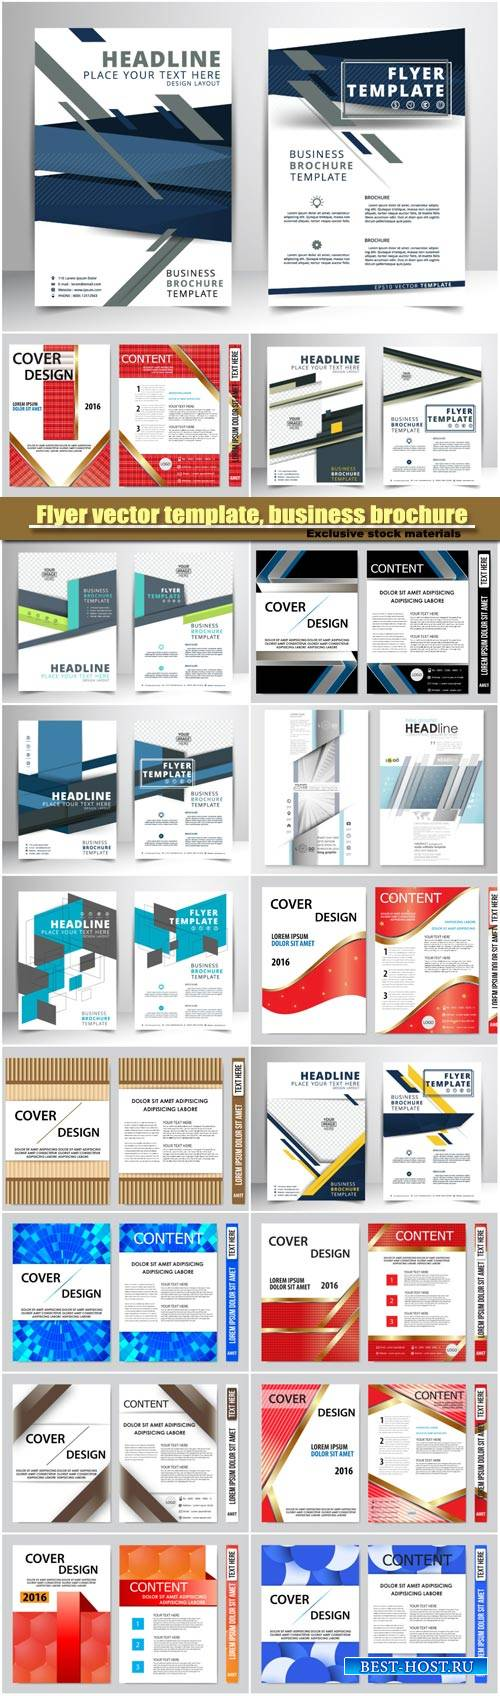 Flyer vector template, business brochure